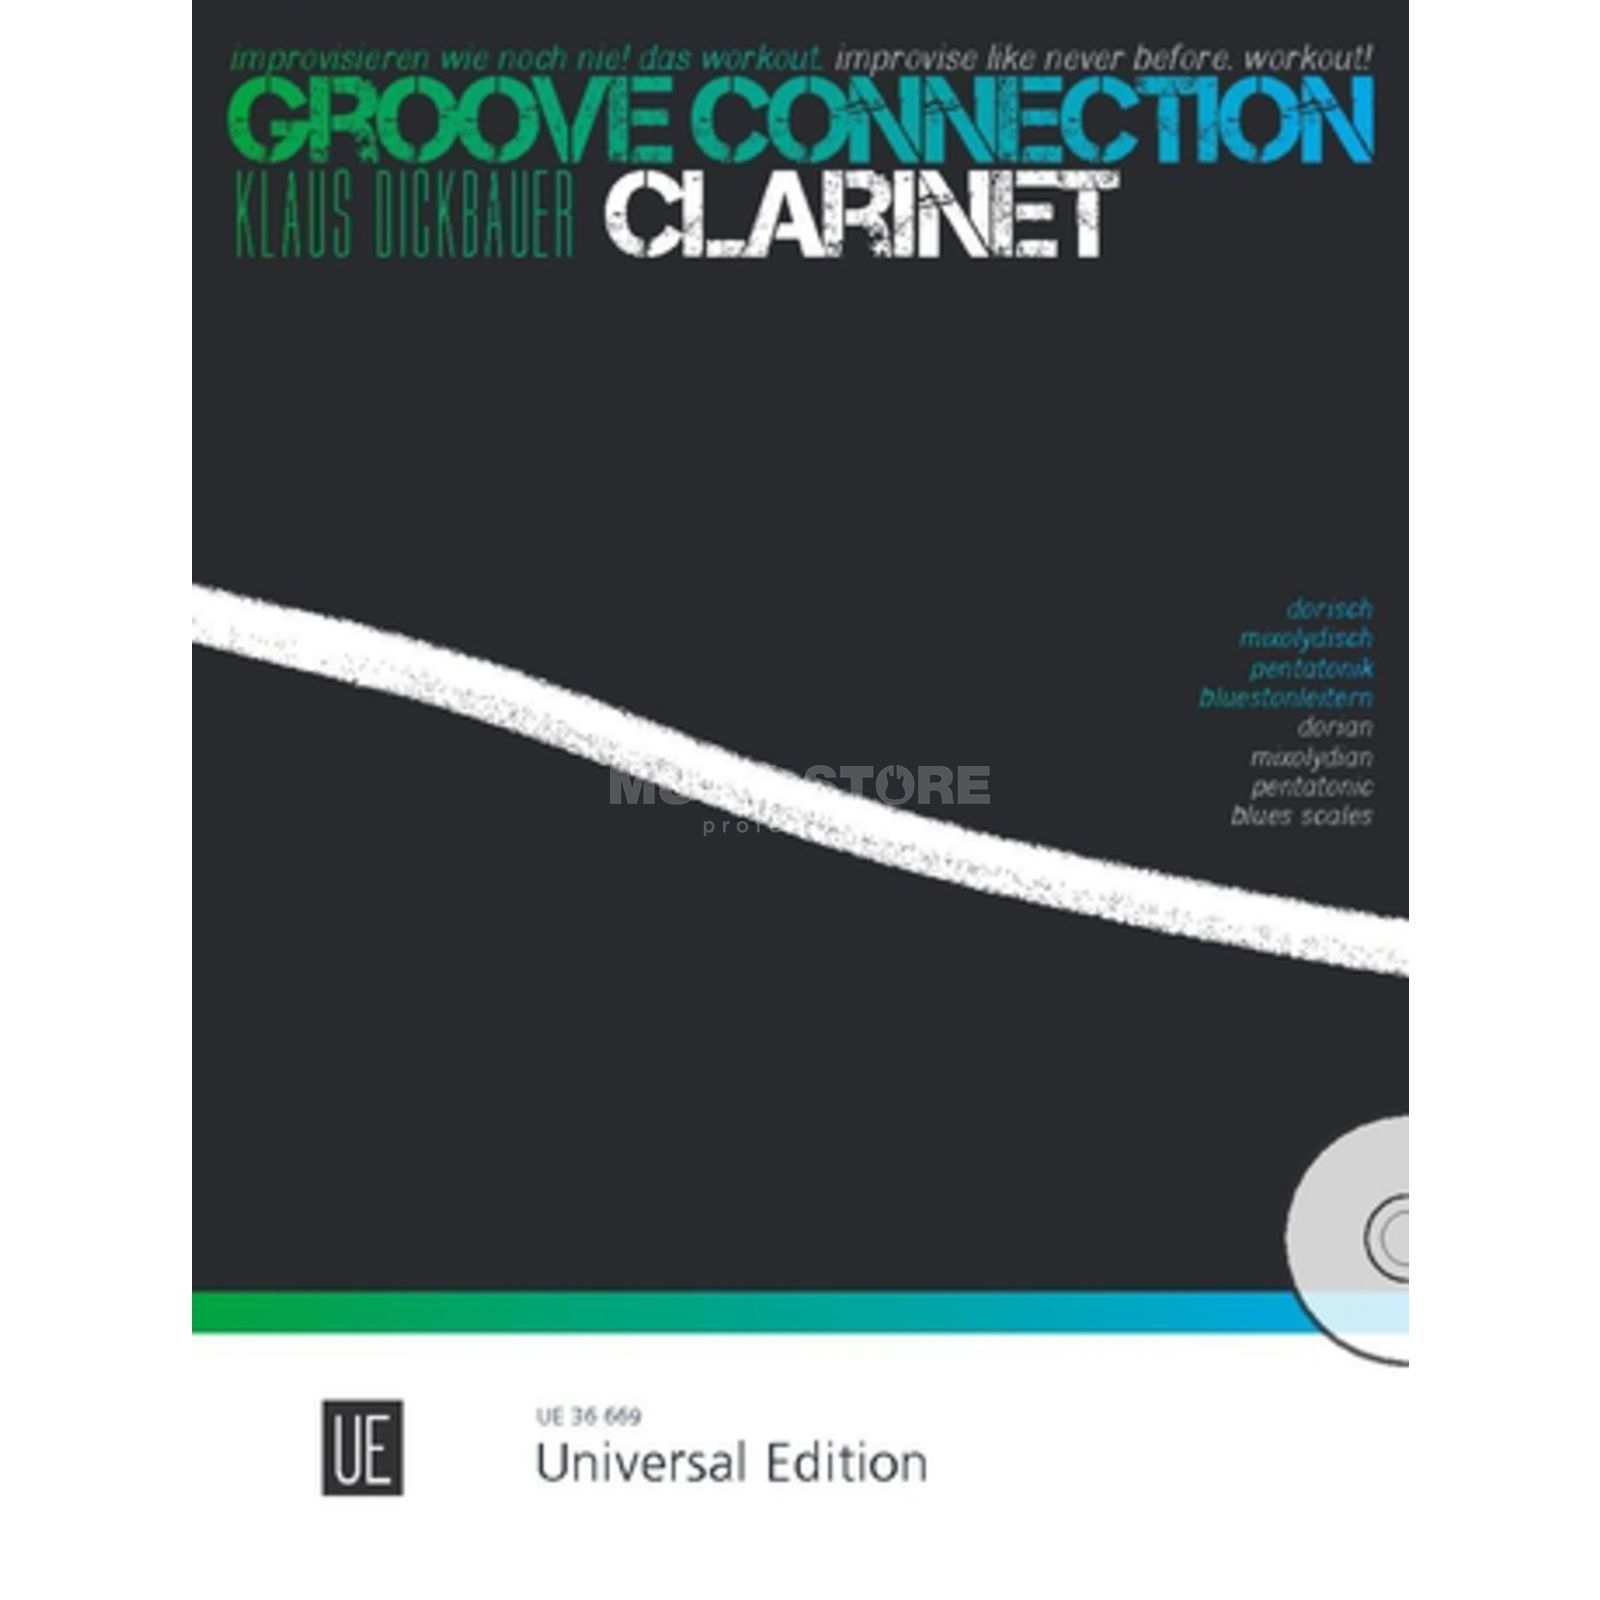 Universal Edition Groove Connection - Clarinet: Dorisch – Mixolydisch – Pentatonik Produktbild